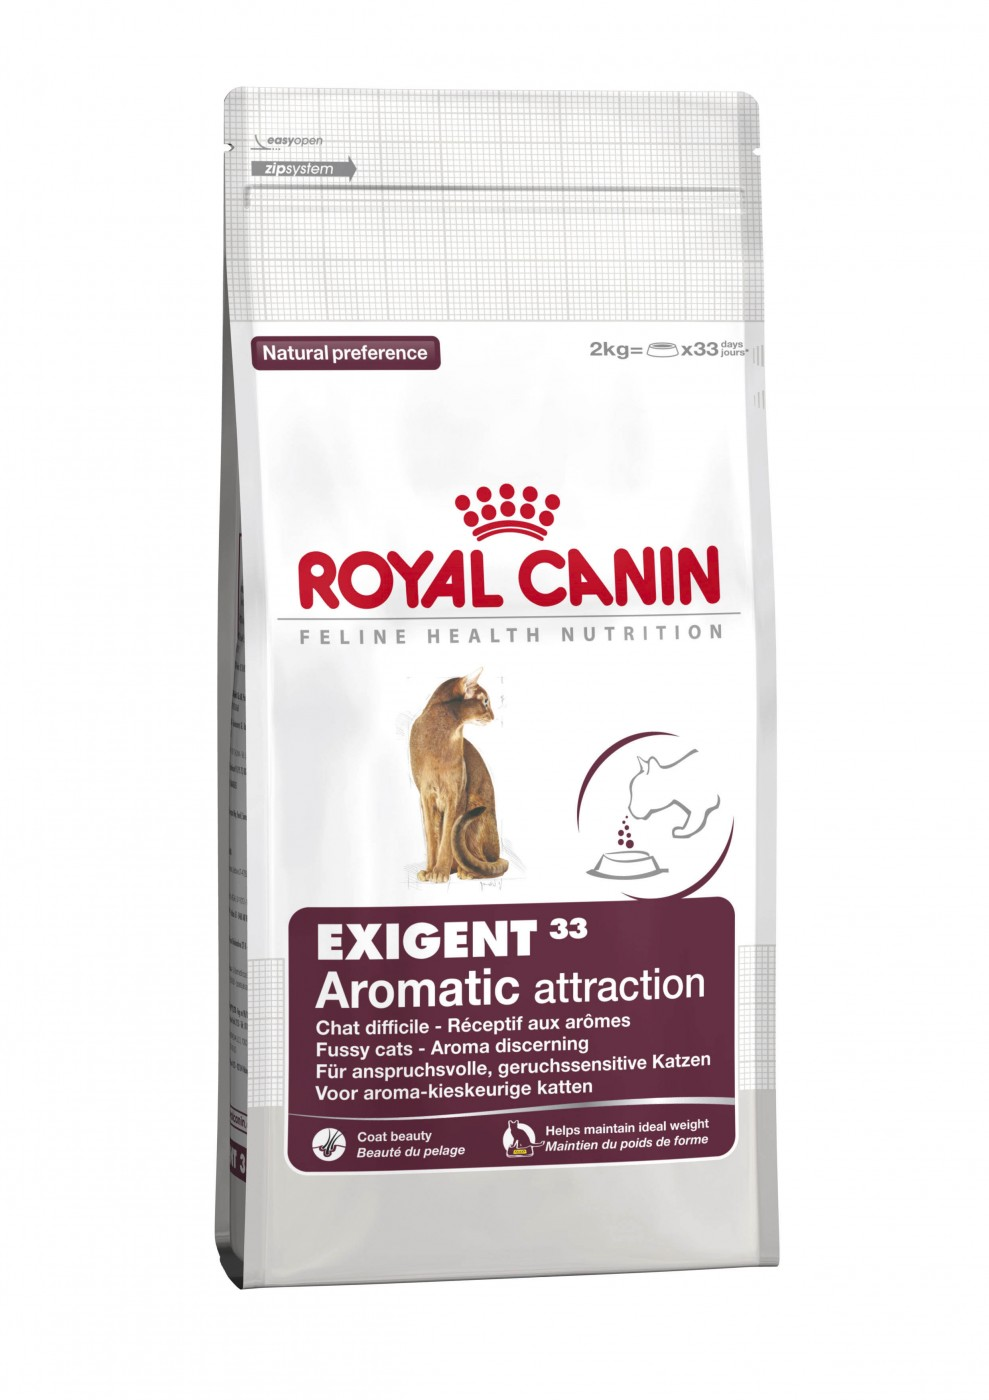 royal canin exigent 33 aromatic 4kg katzenfutter f r geruchsintensive katzen. Black Bedroom Furniture Sets. Home Design Ideas